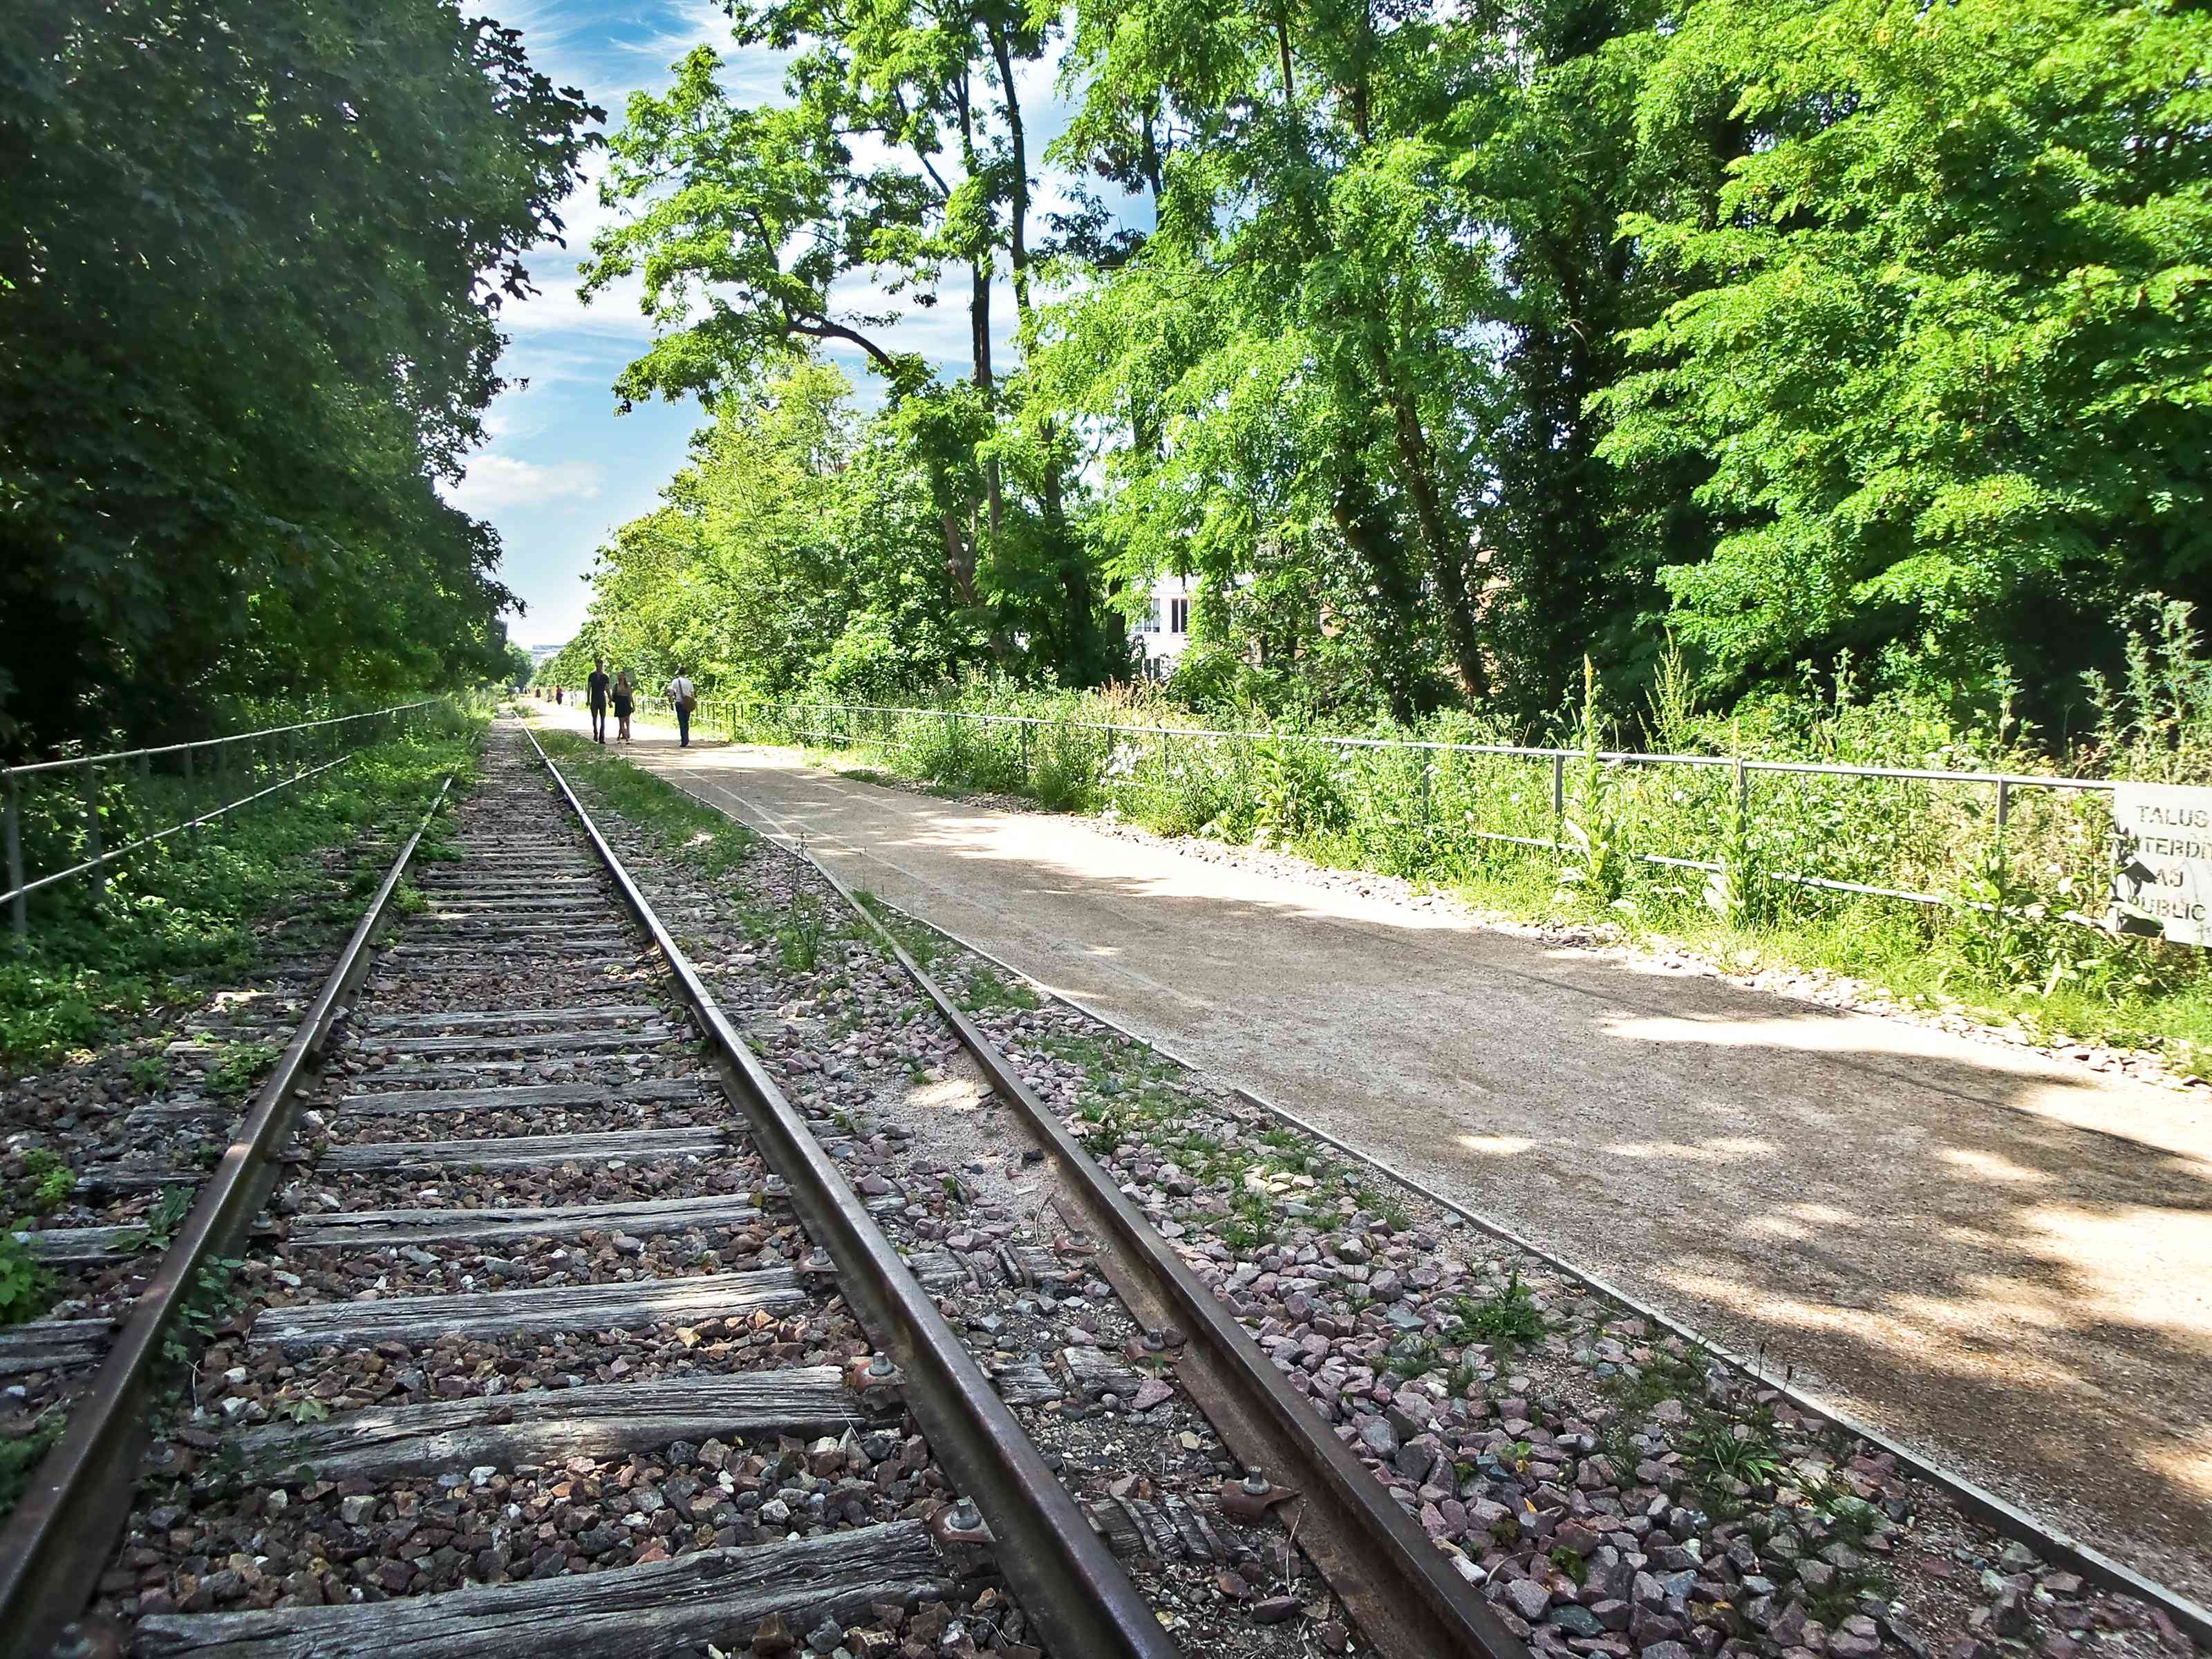 An abandoned portion of the train track next to a walking a path, and tall green trees that makes up Petite Ceinture in Pari,